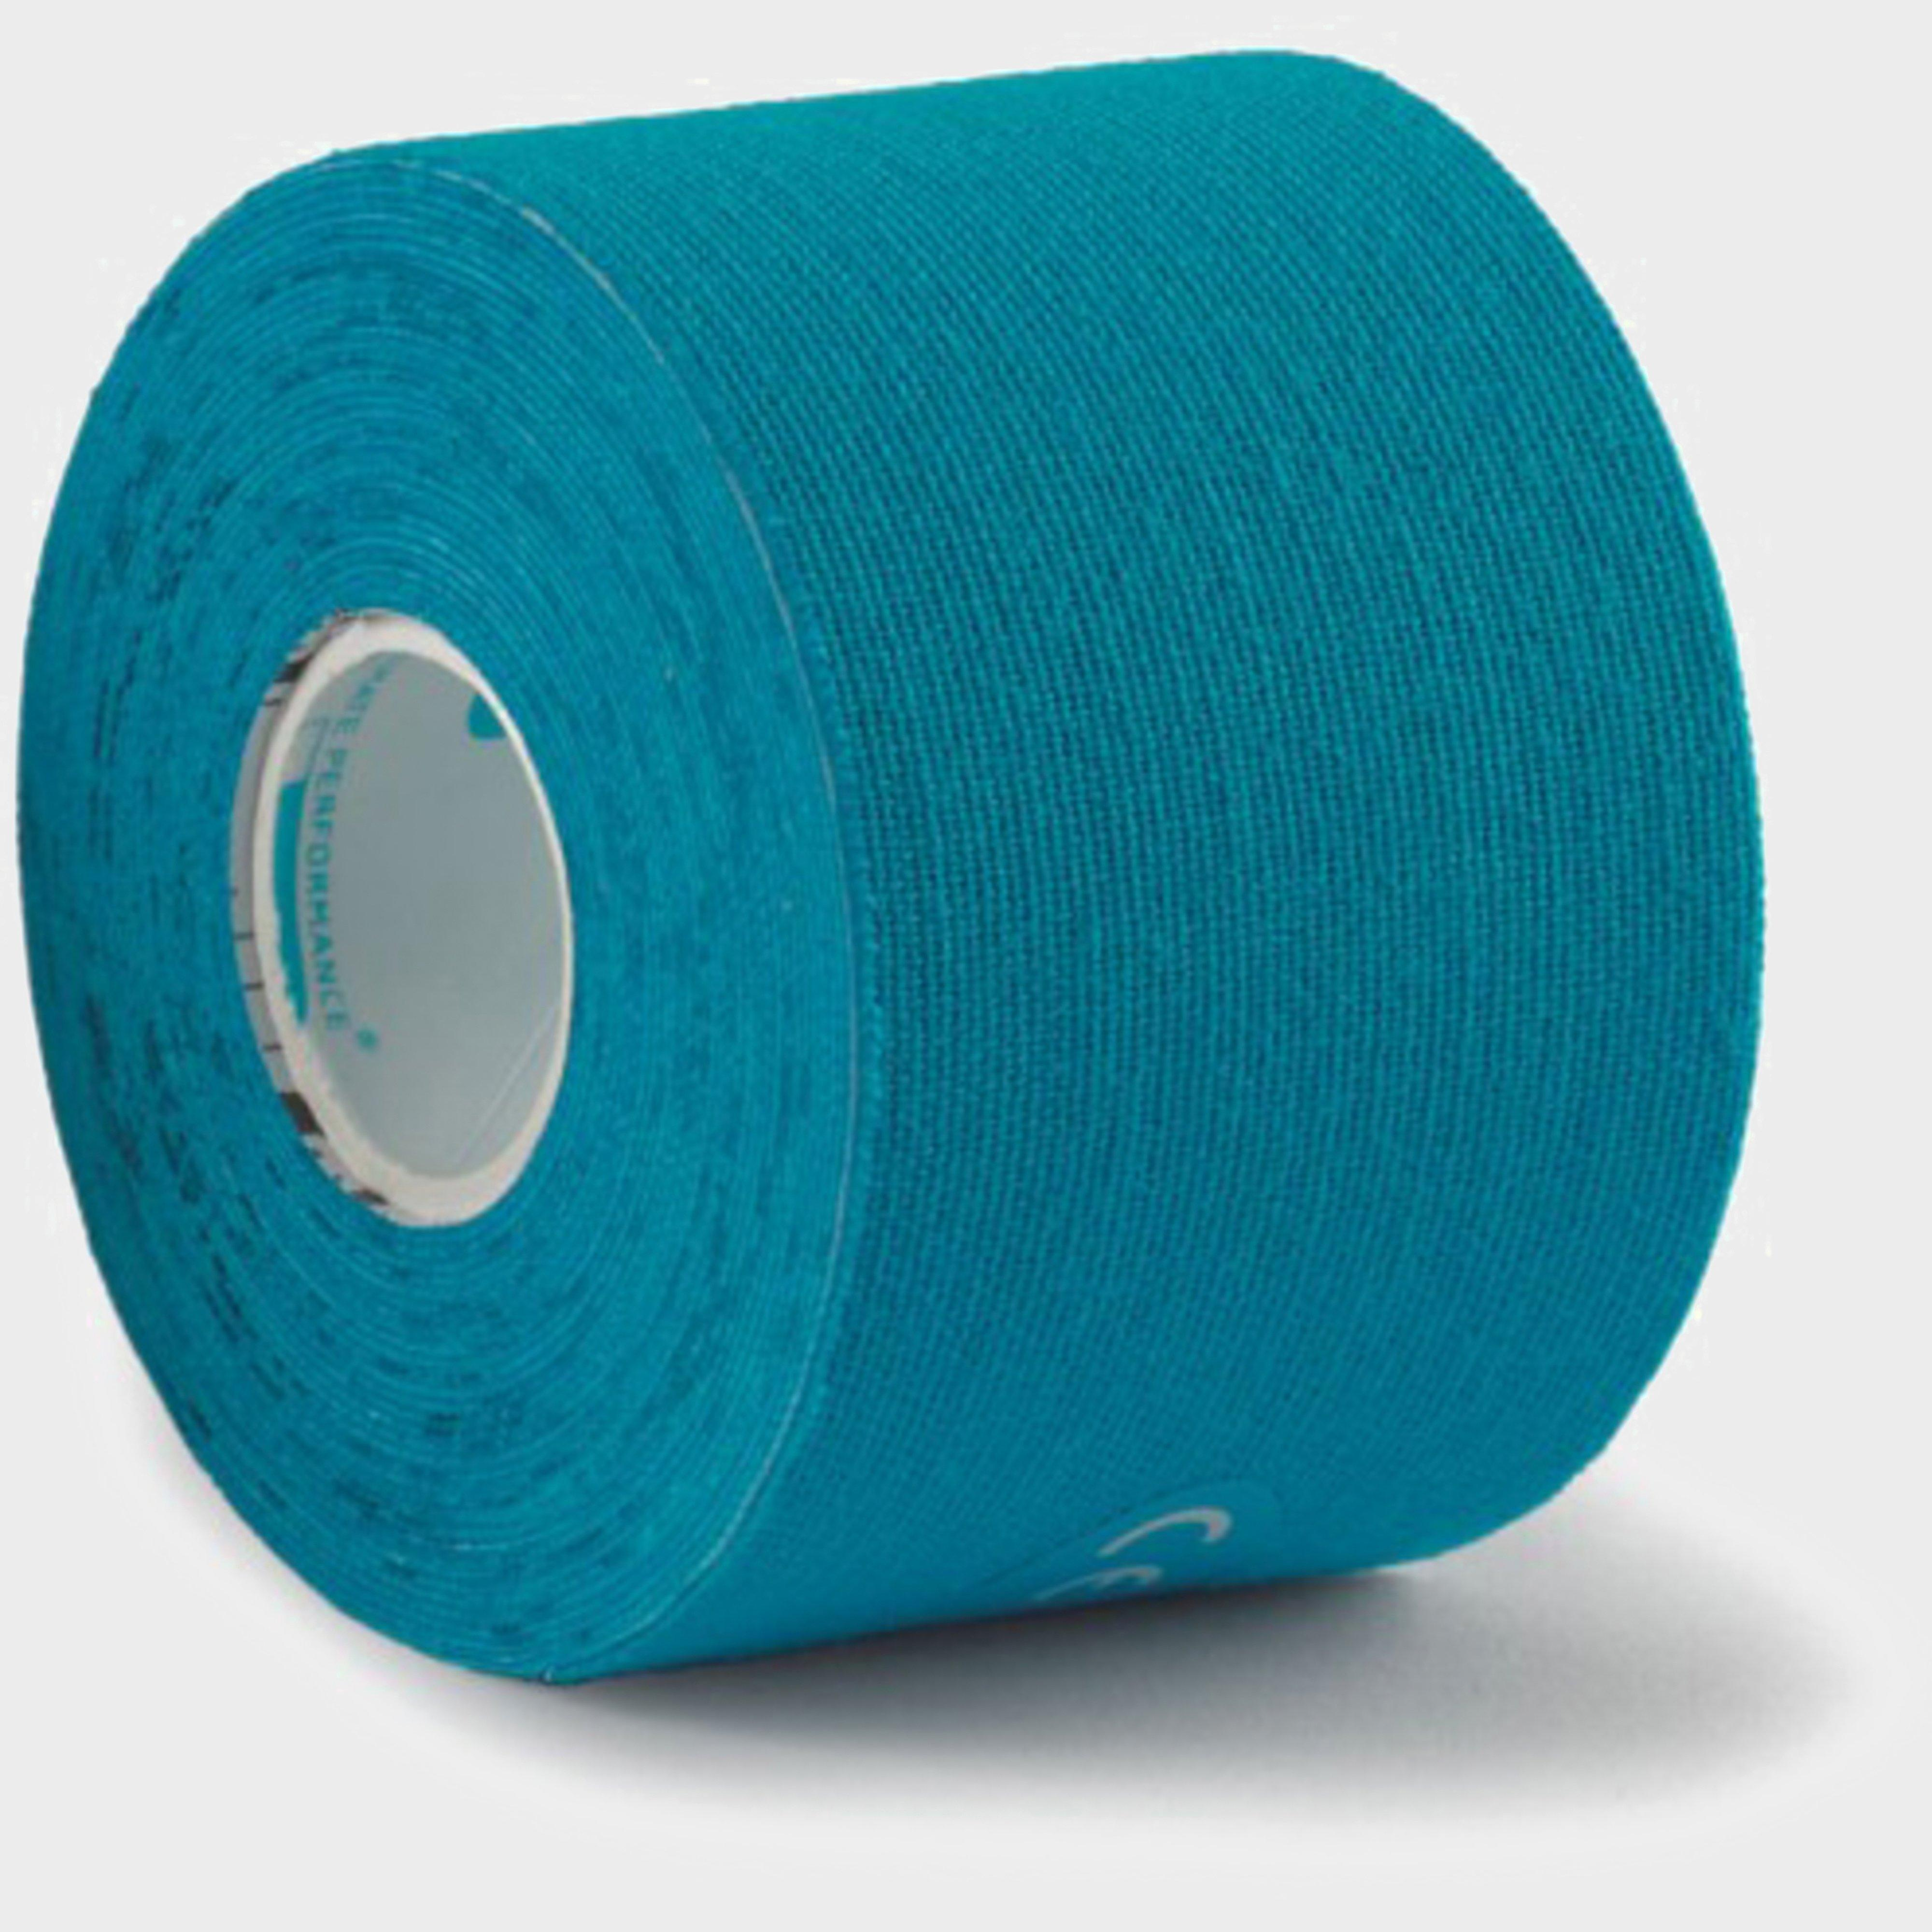 Ultimate Perfor Ultimate Perfor Kinesiology Tape (Single Roll)